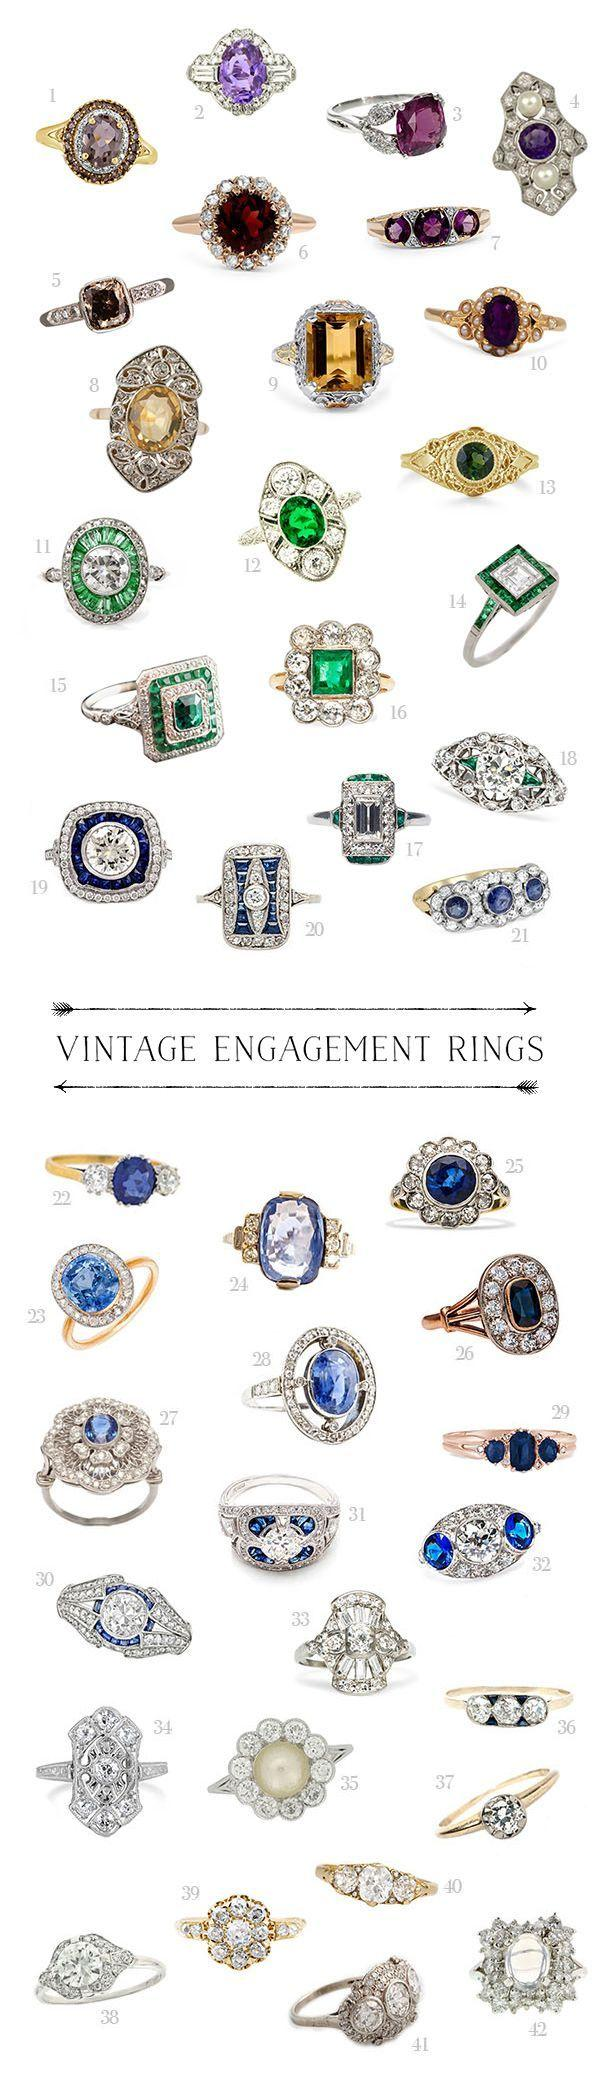 Wedding - Kathryn Loves... A Rainbow Of Vintage Engagement Rings